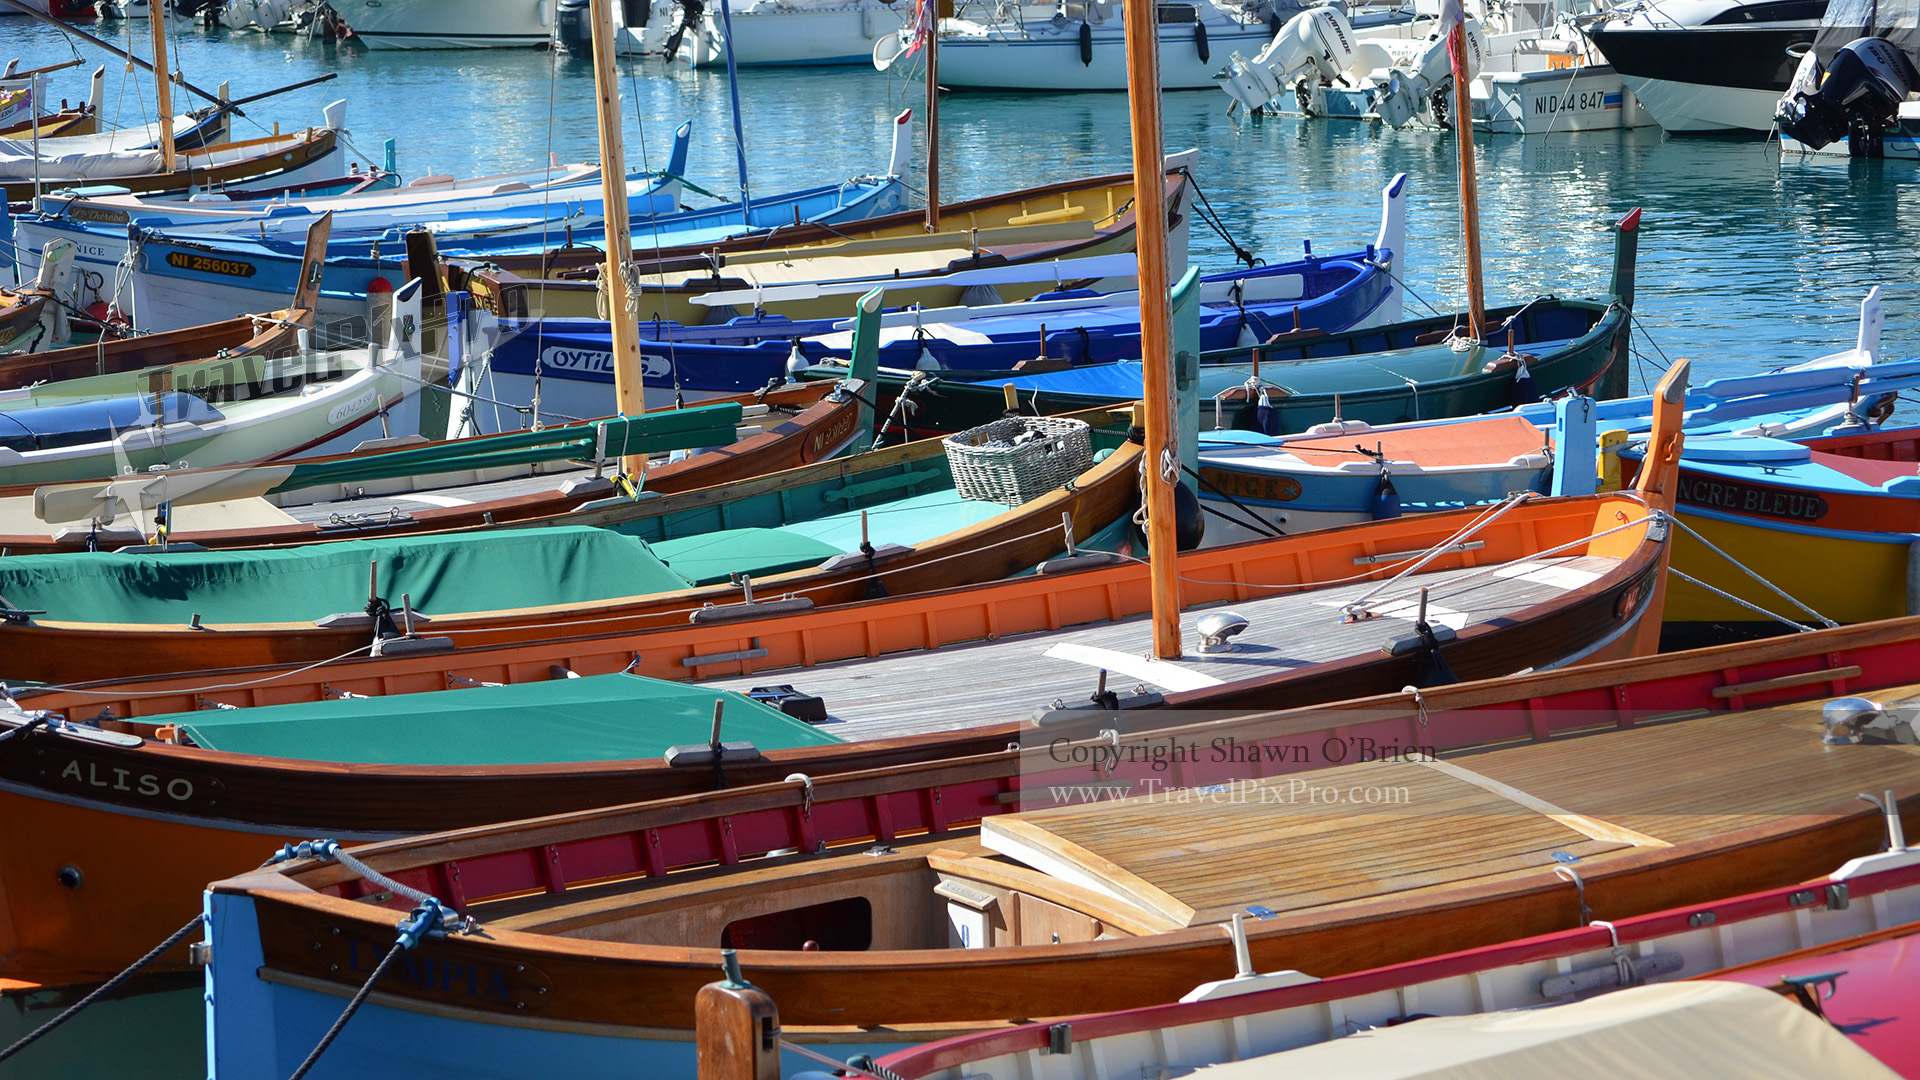 Boats Moored in Port of Nice